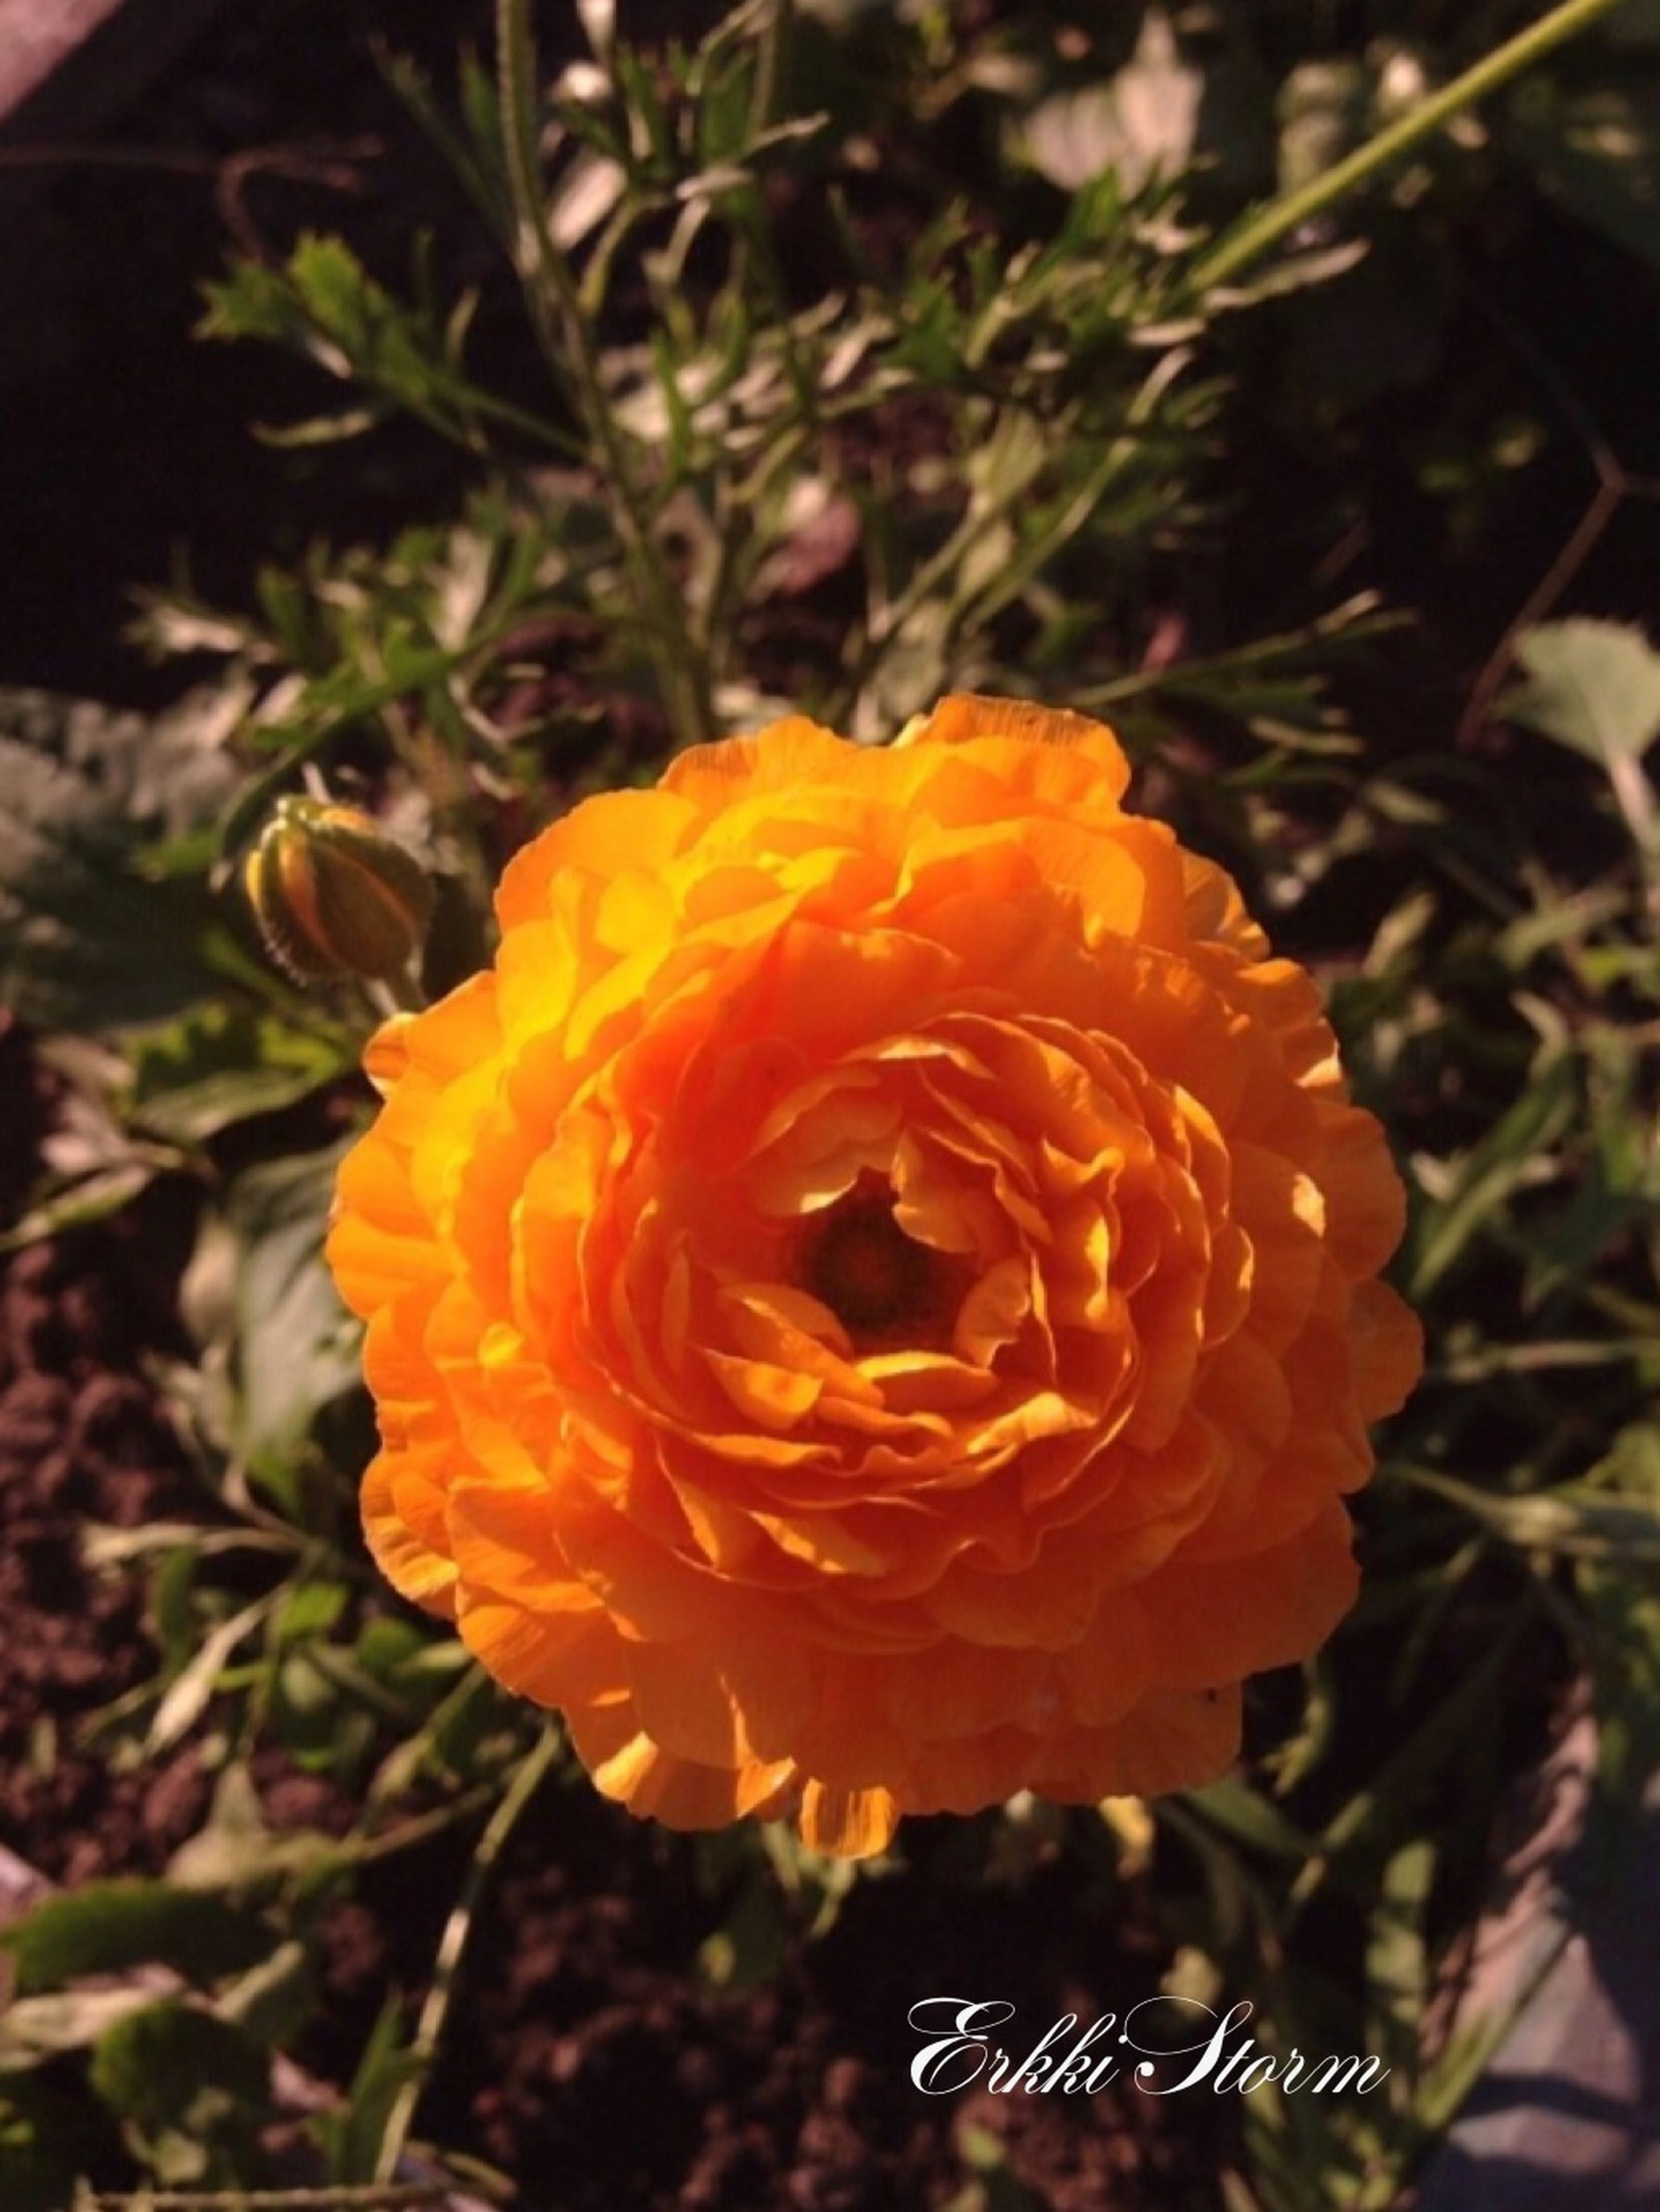 flower, petal, freshness, flower head, fragility, growth, beauty in nature, close-up, plant, blooming, single flower, focus on foreground, orange color, nature, high angle view, yellow, in bloom, no people, outdoors, rose - flower